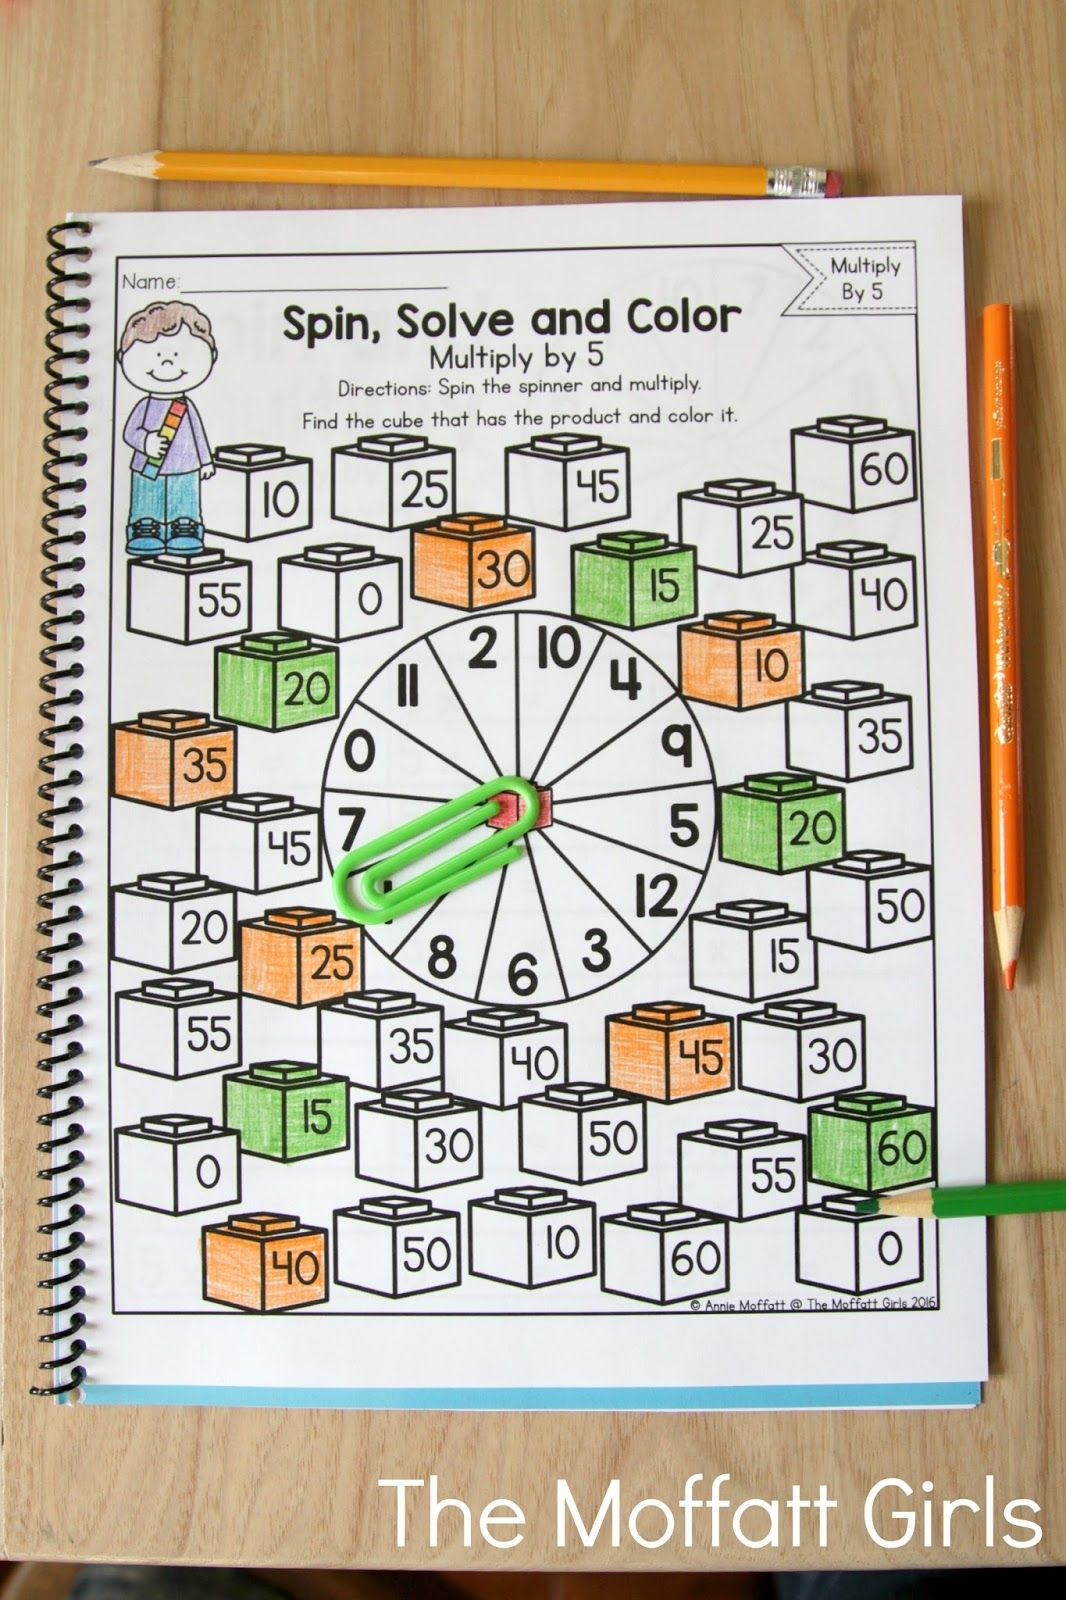 Mastering Multiplication! | Third grade math | Pinterest ...